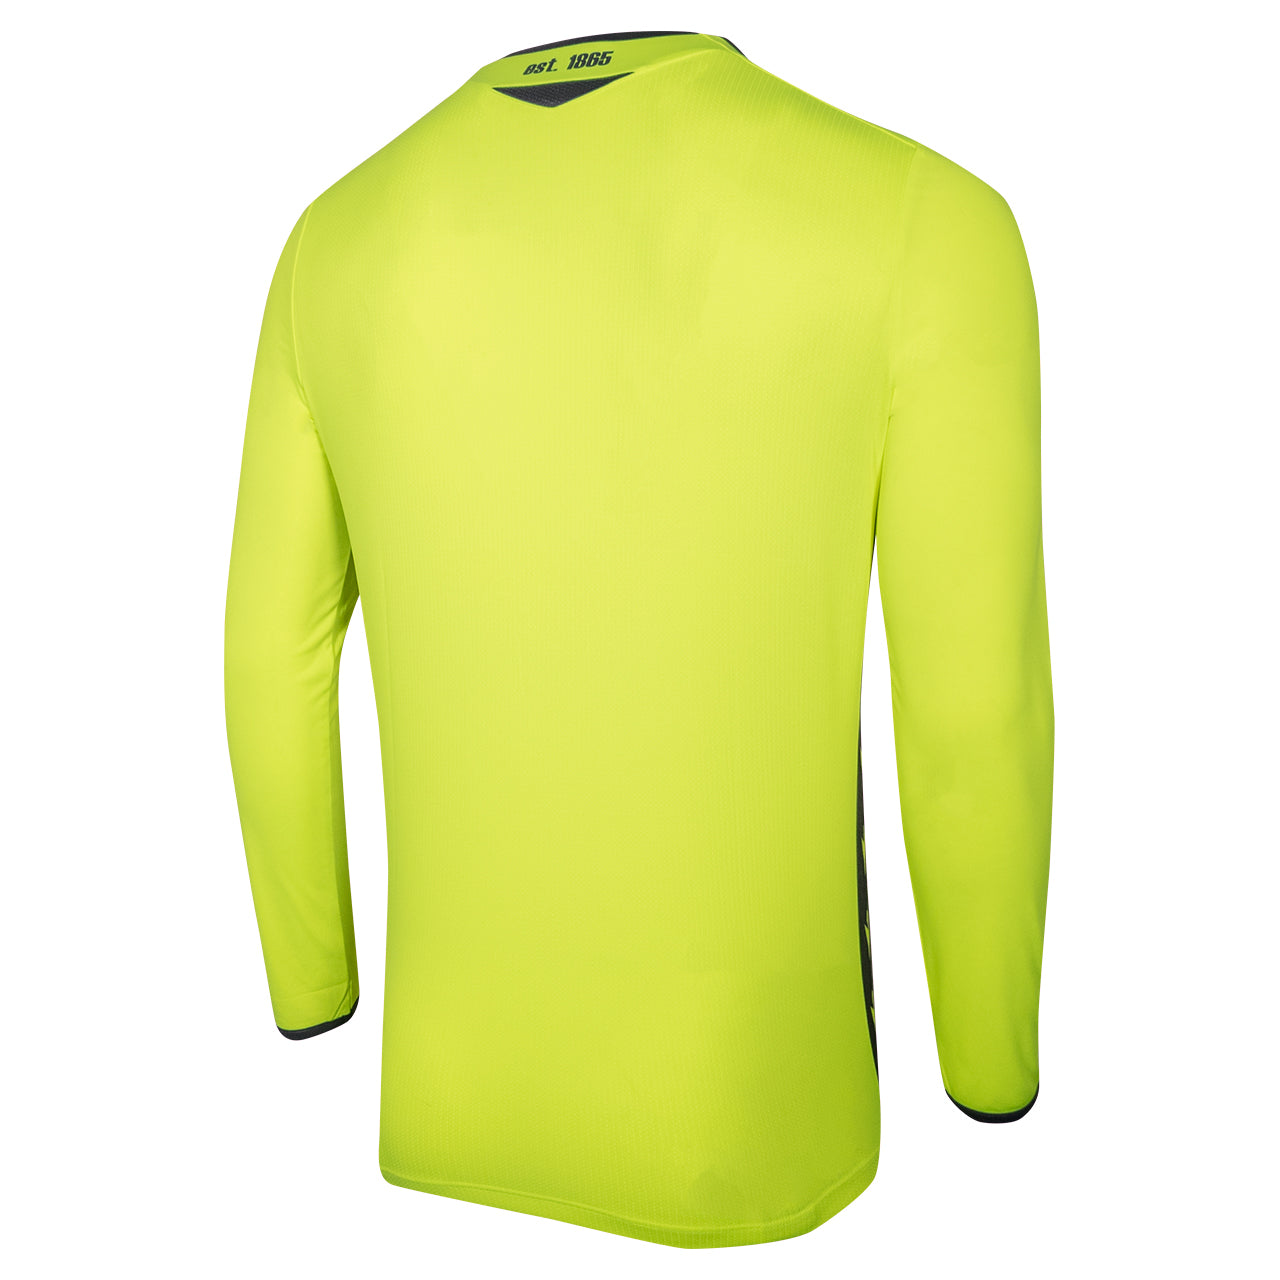 NFFC Junior Yellow Goalkeeper Shirt 2020/21